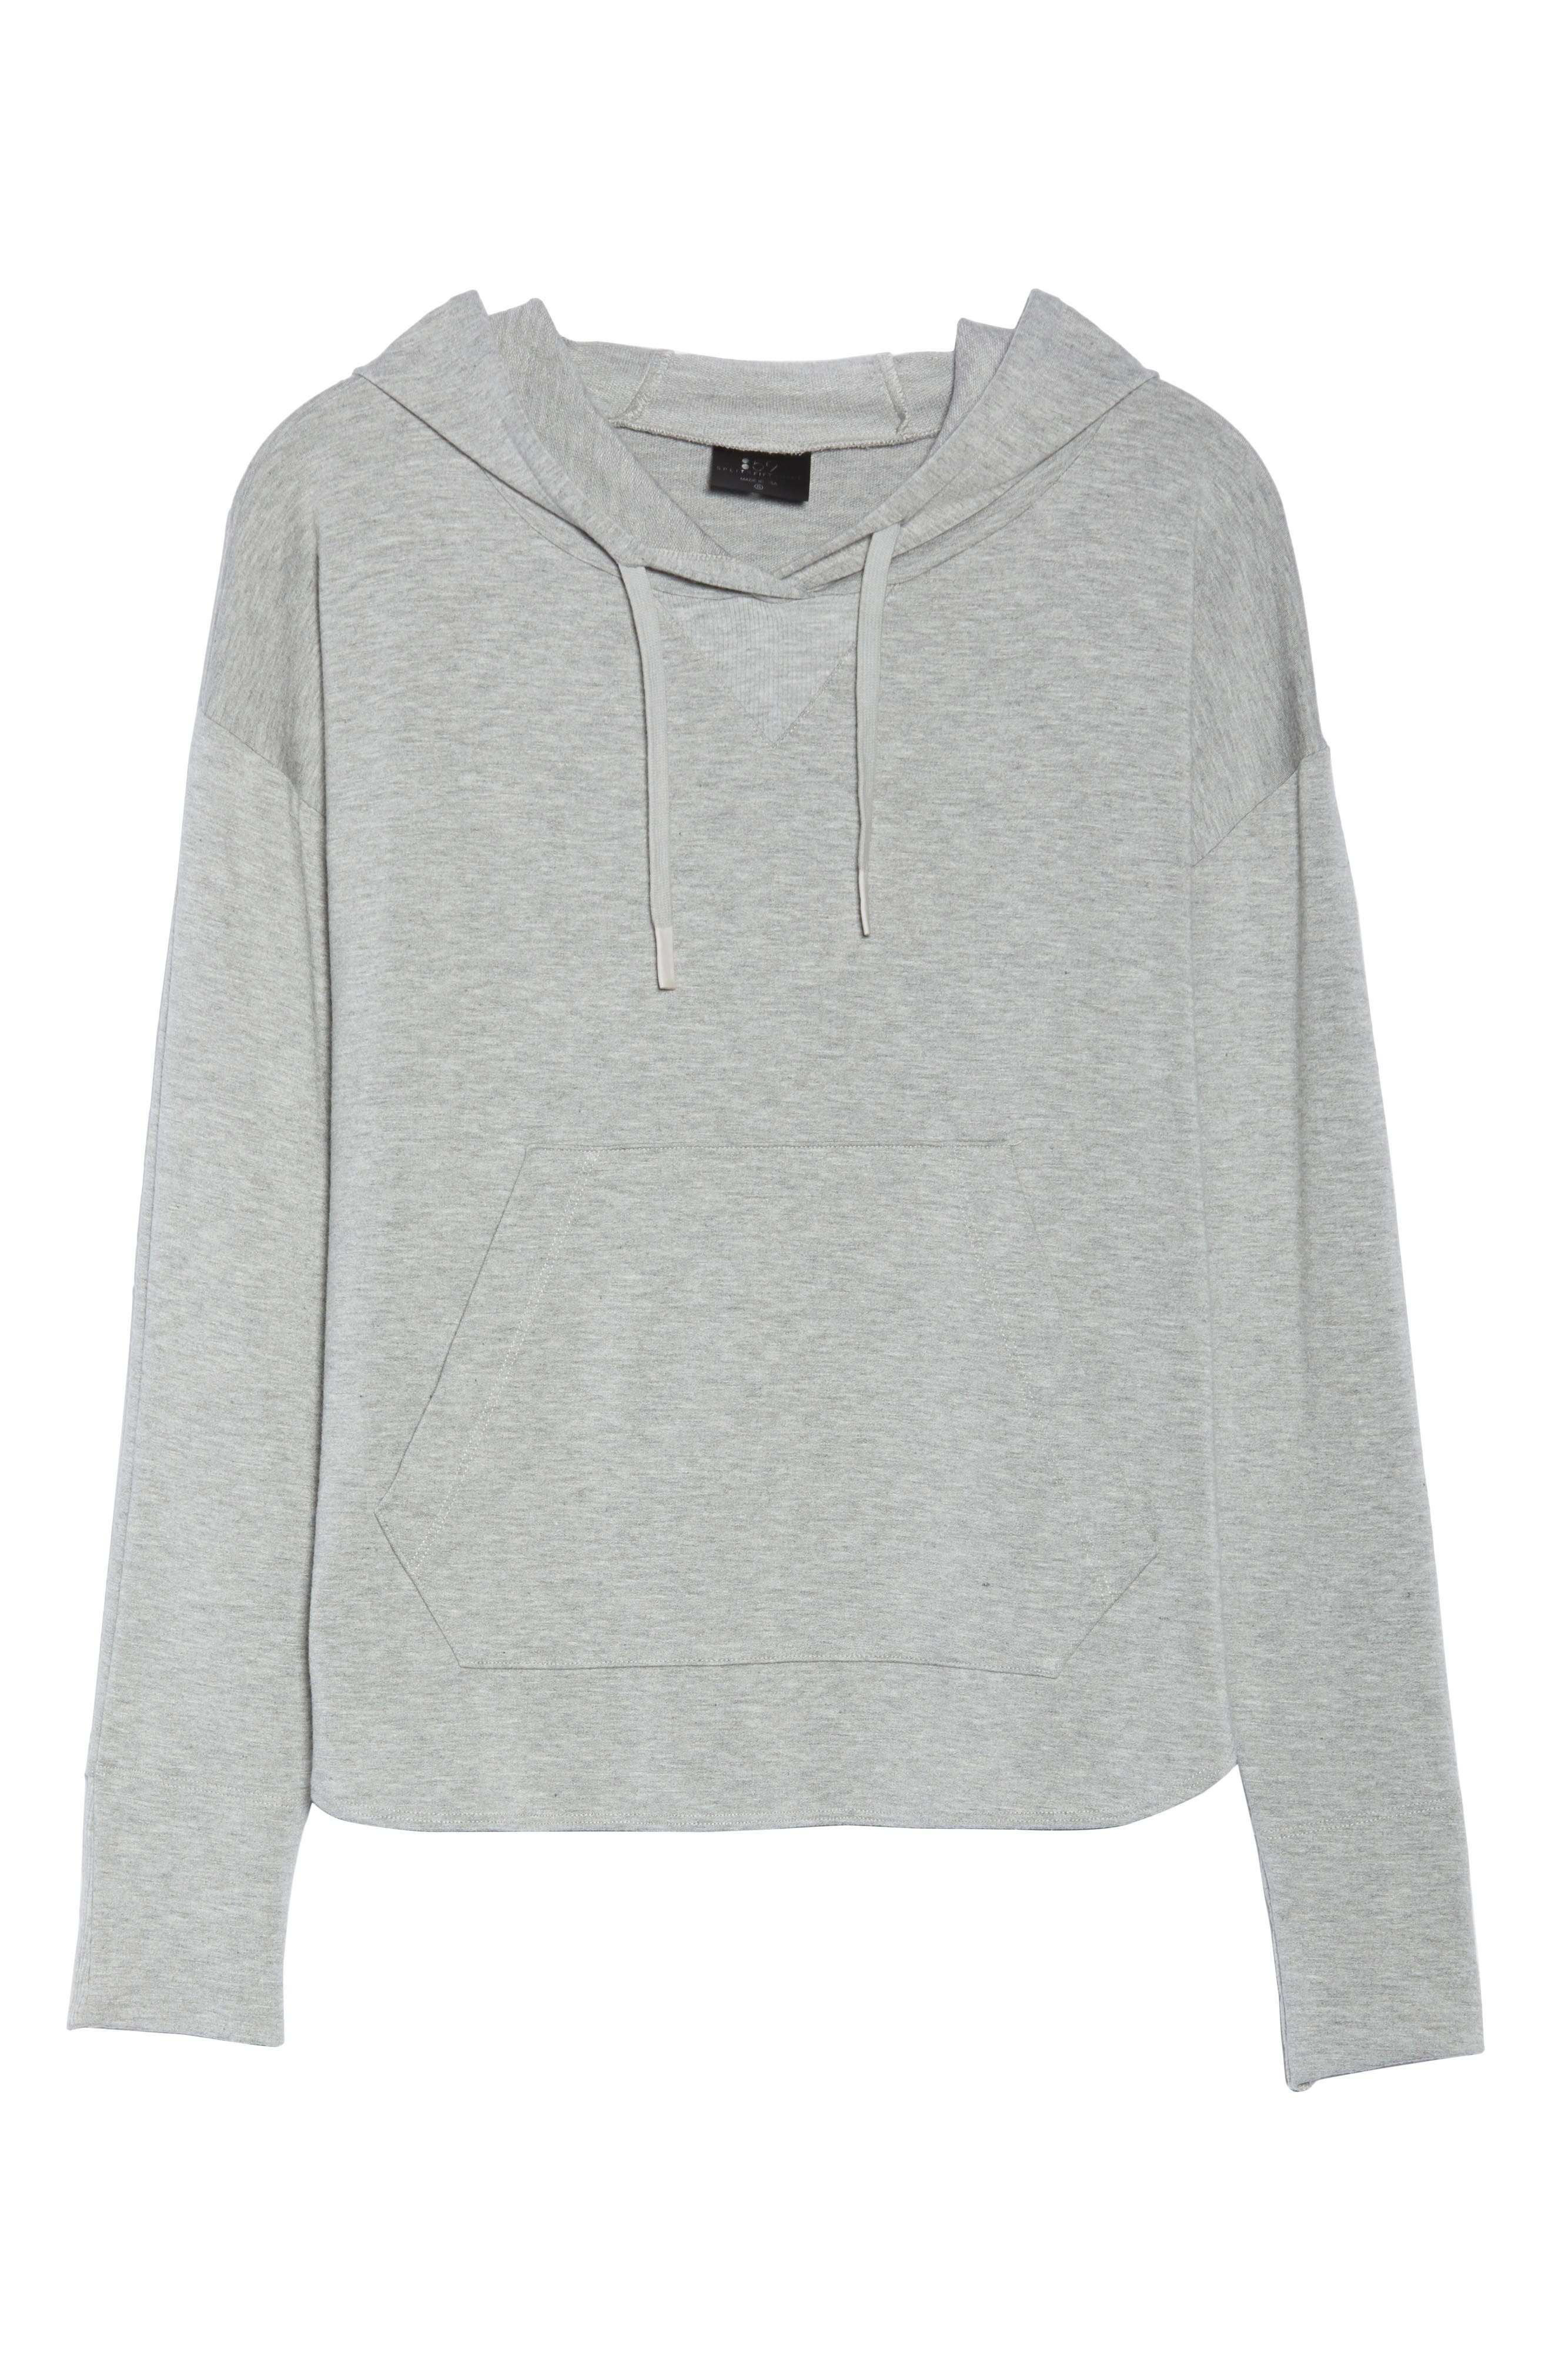 Pacific Hoodie,                             Alternate thumbnail 7, color,                             LIGHT HEATHER GREY